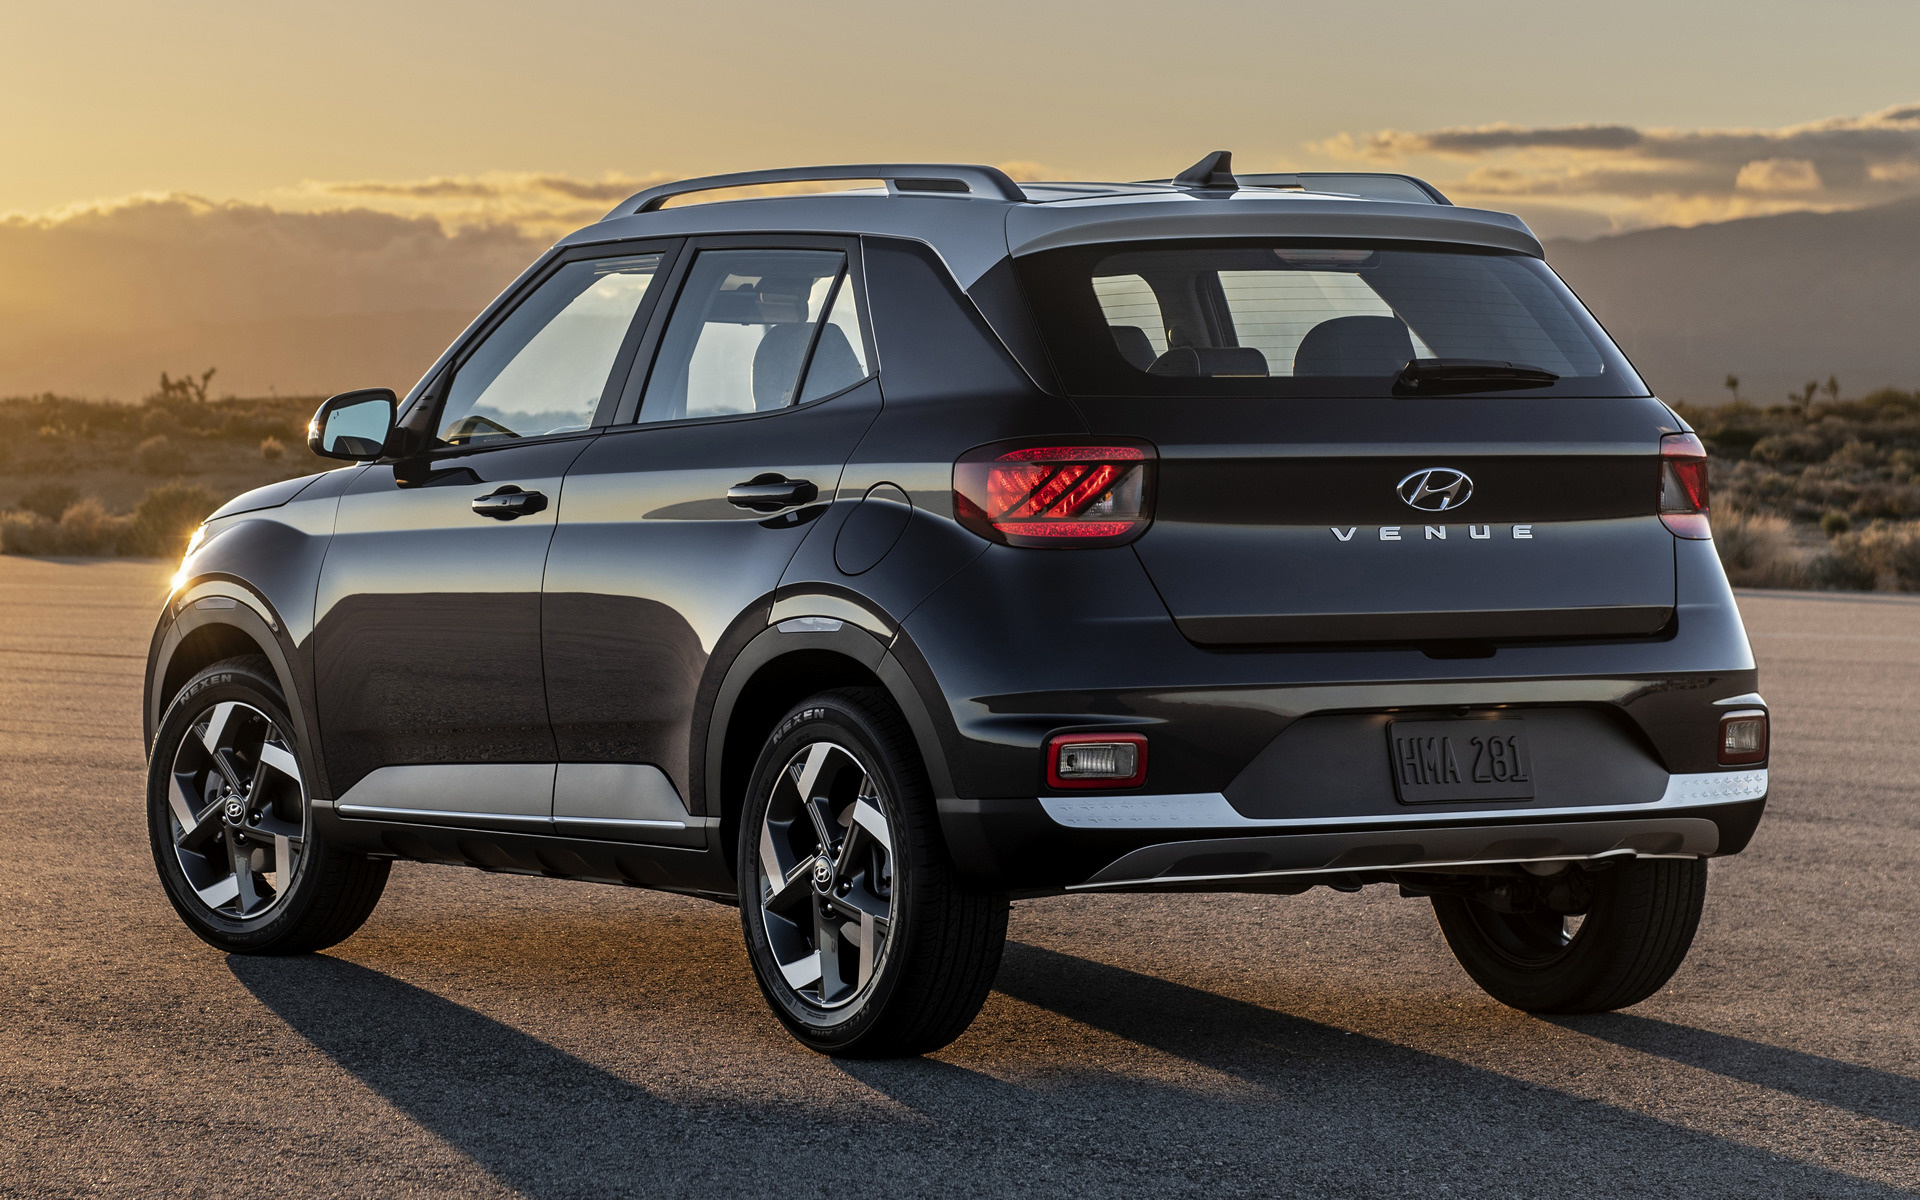 2020 Hyundai Venue   Wallpapers and HD Images Car Pixel 1920x1200